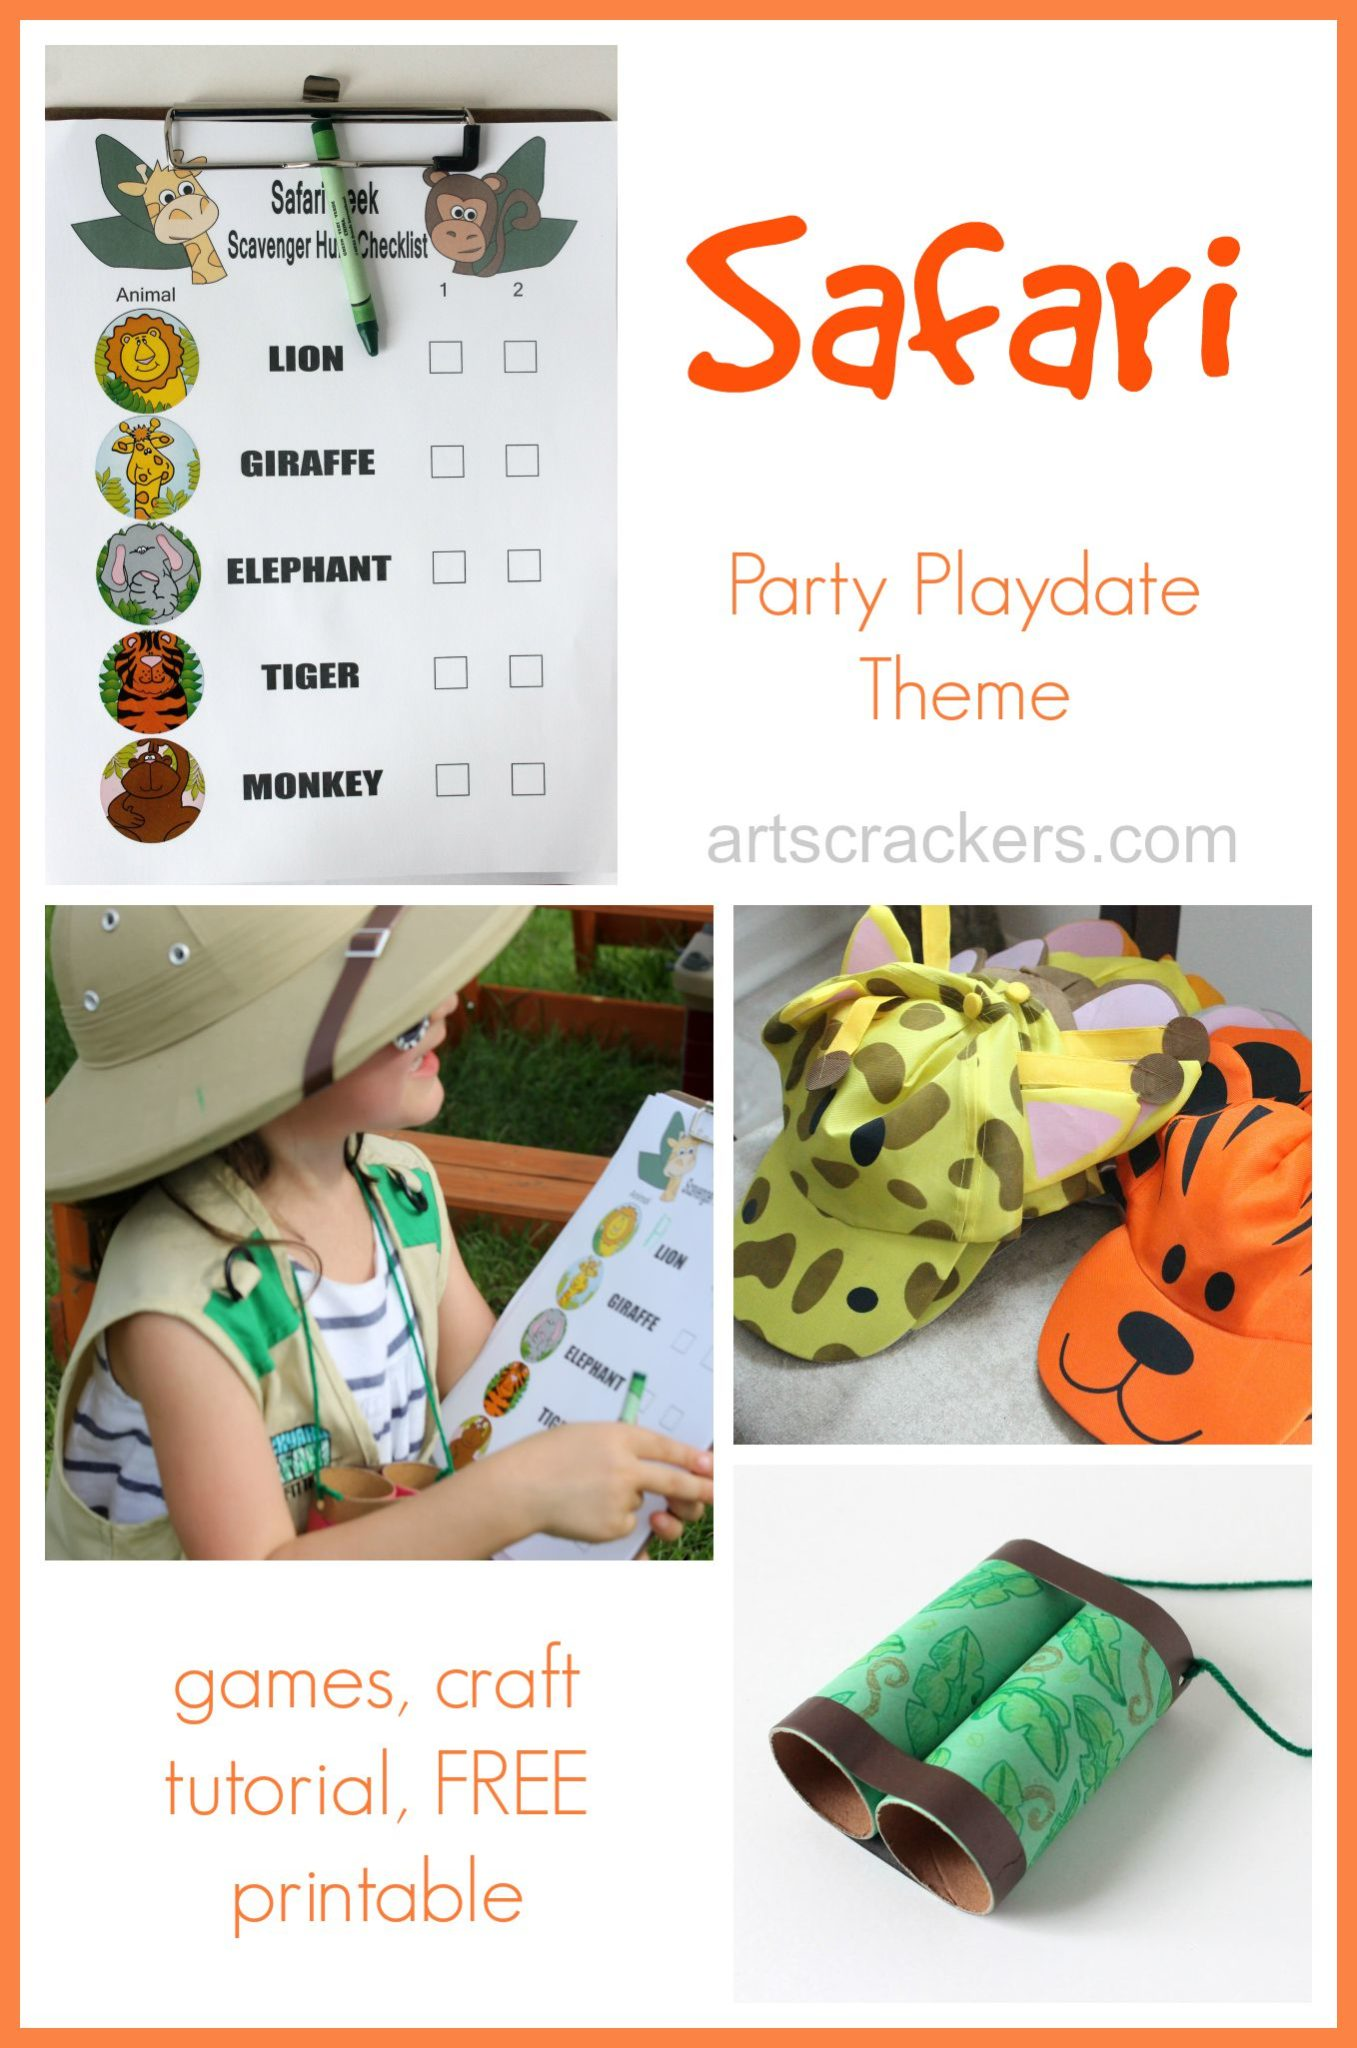 Safari Party Playdate Theme plus Games, Tutorial, and FREE Printable